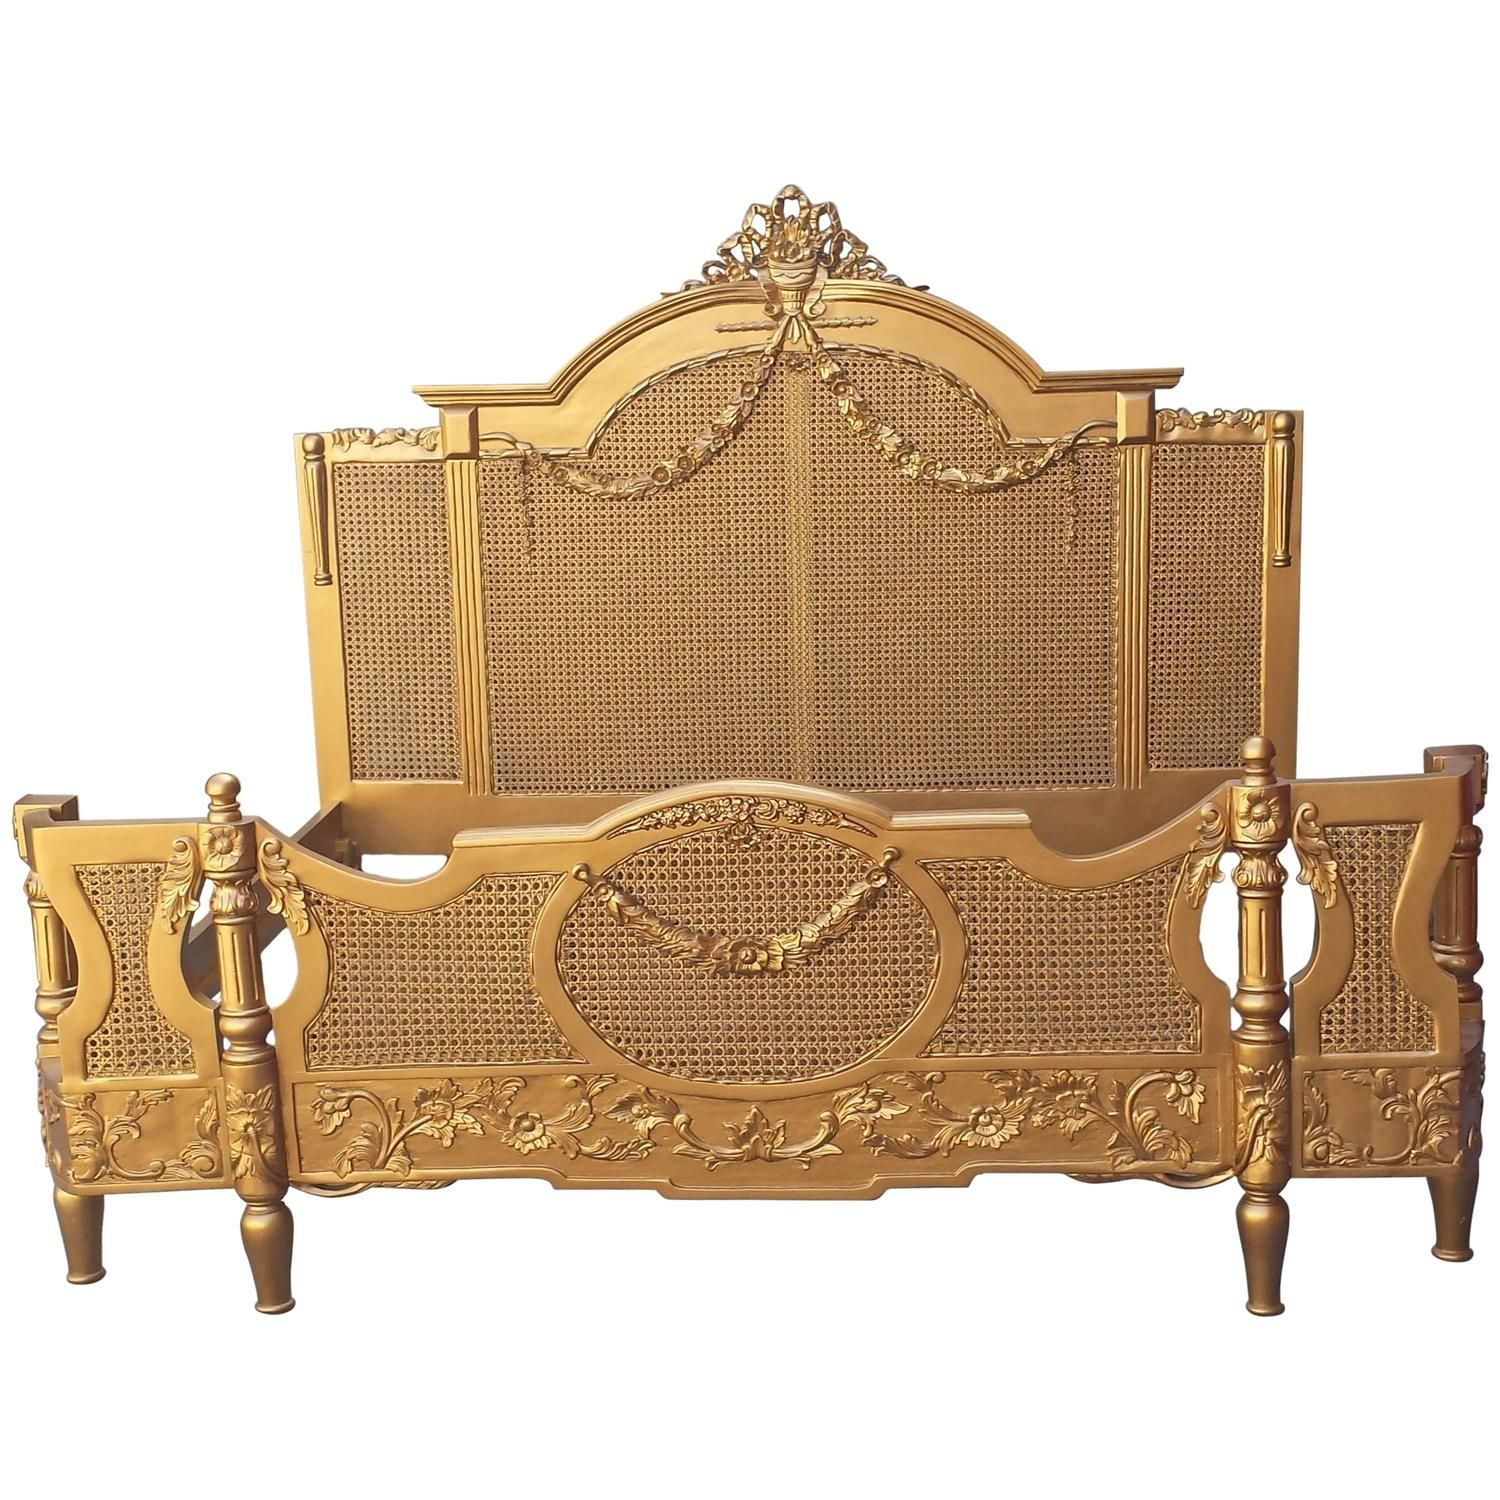 French Gold Cane Bed KingSize in the Louis XV Provincial